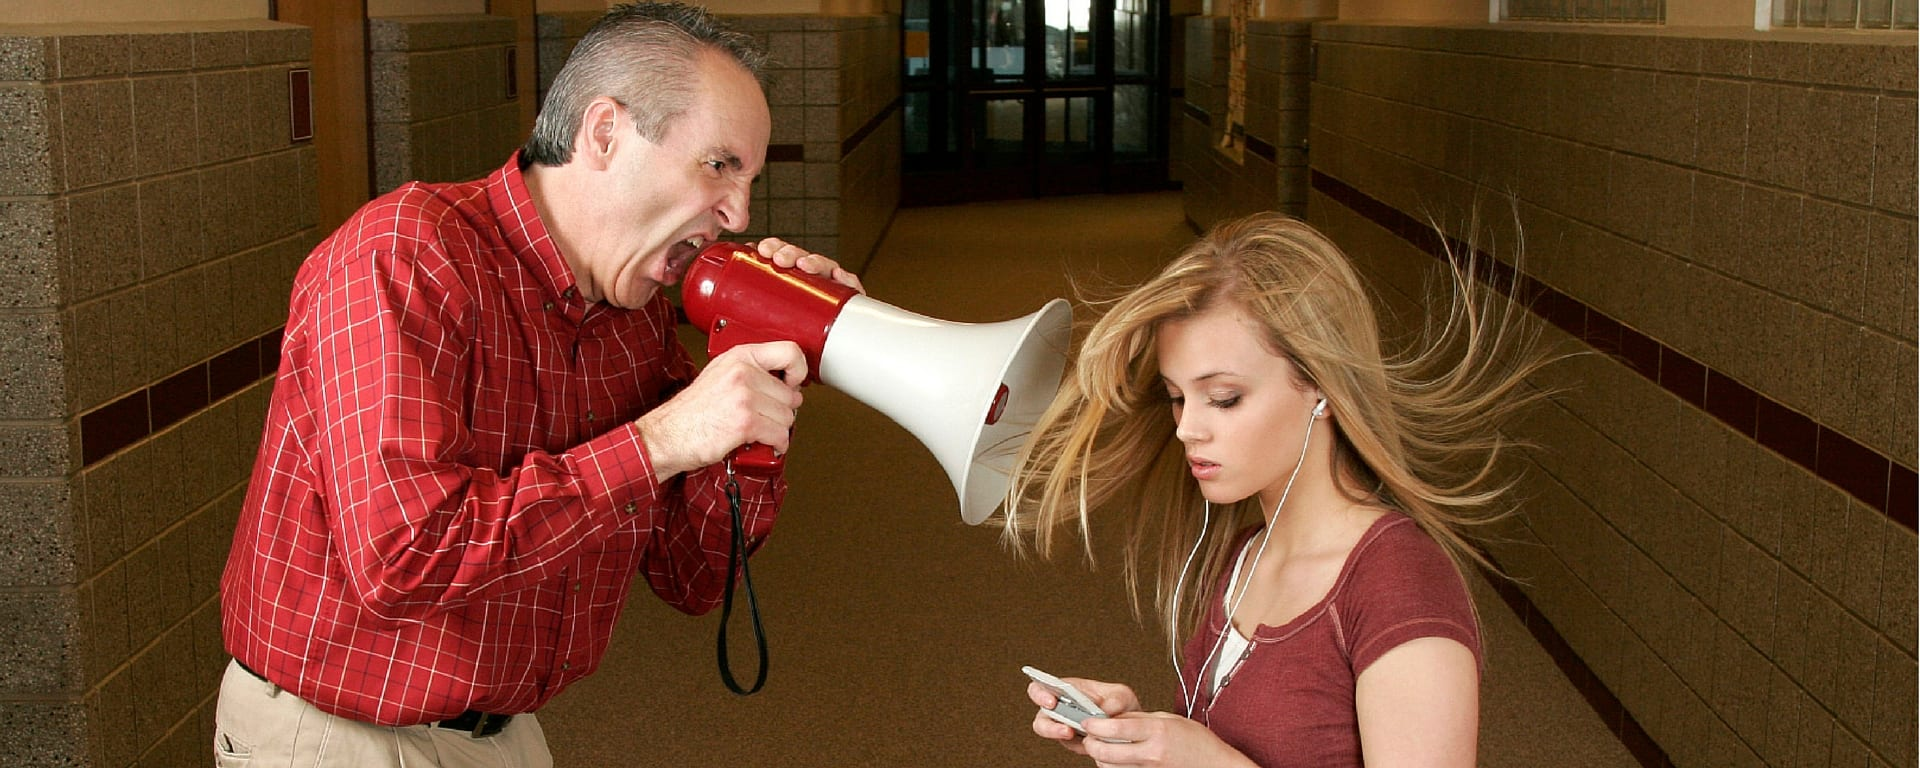 Is Today's Teenager Responsible Enough?